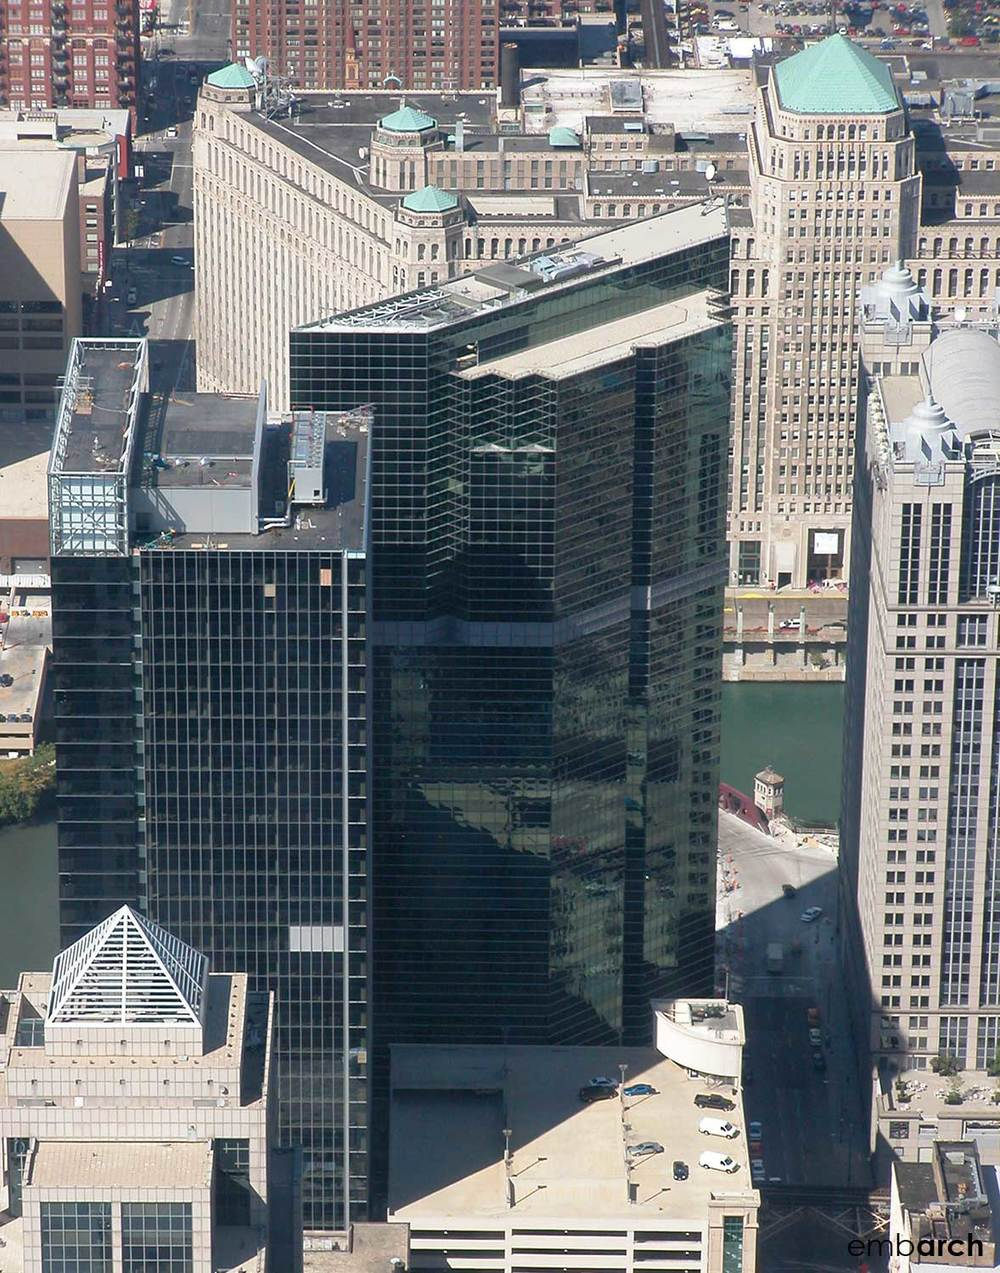 333 West Wacker Drive - aerial view